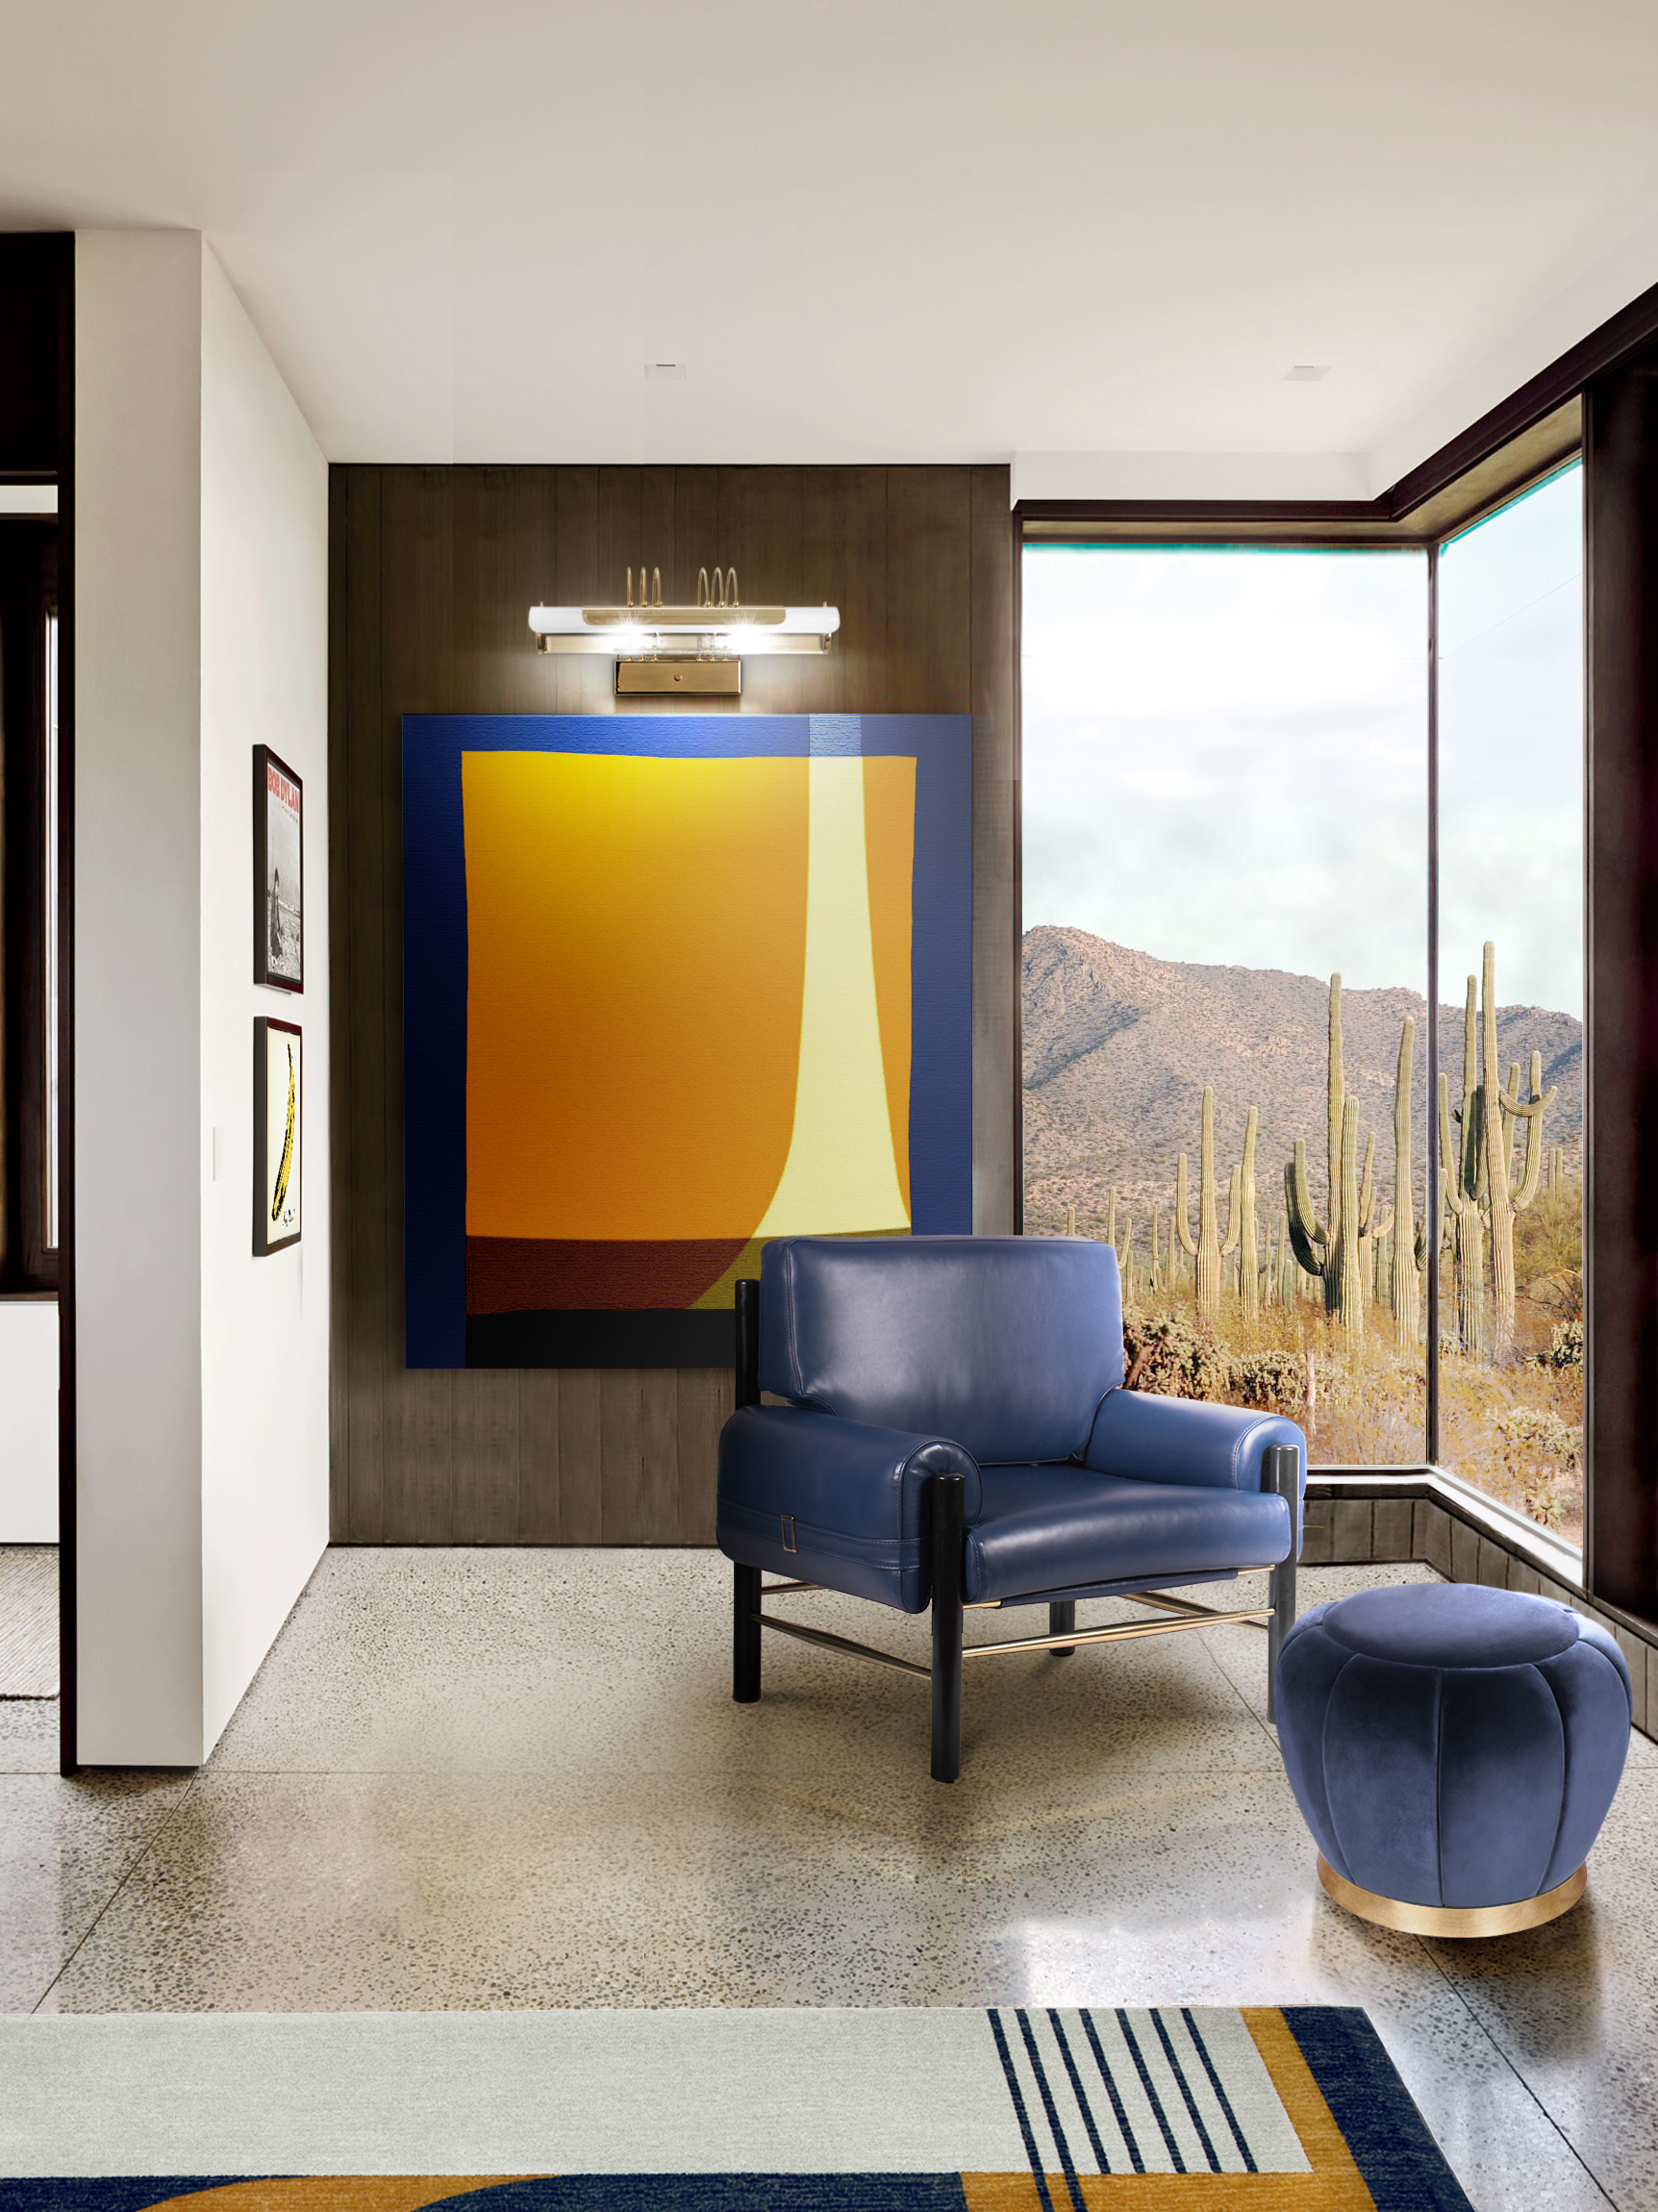 Your Home is The New Hotel & Restaurant: Renovate Your Décor According to Pantone Summer Colors 2020! pantone summer colors Home is The New Hotel & Restaurant: Renovate Your Décor According to Pantone Summer Colors 2020! 24